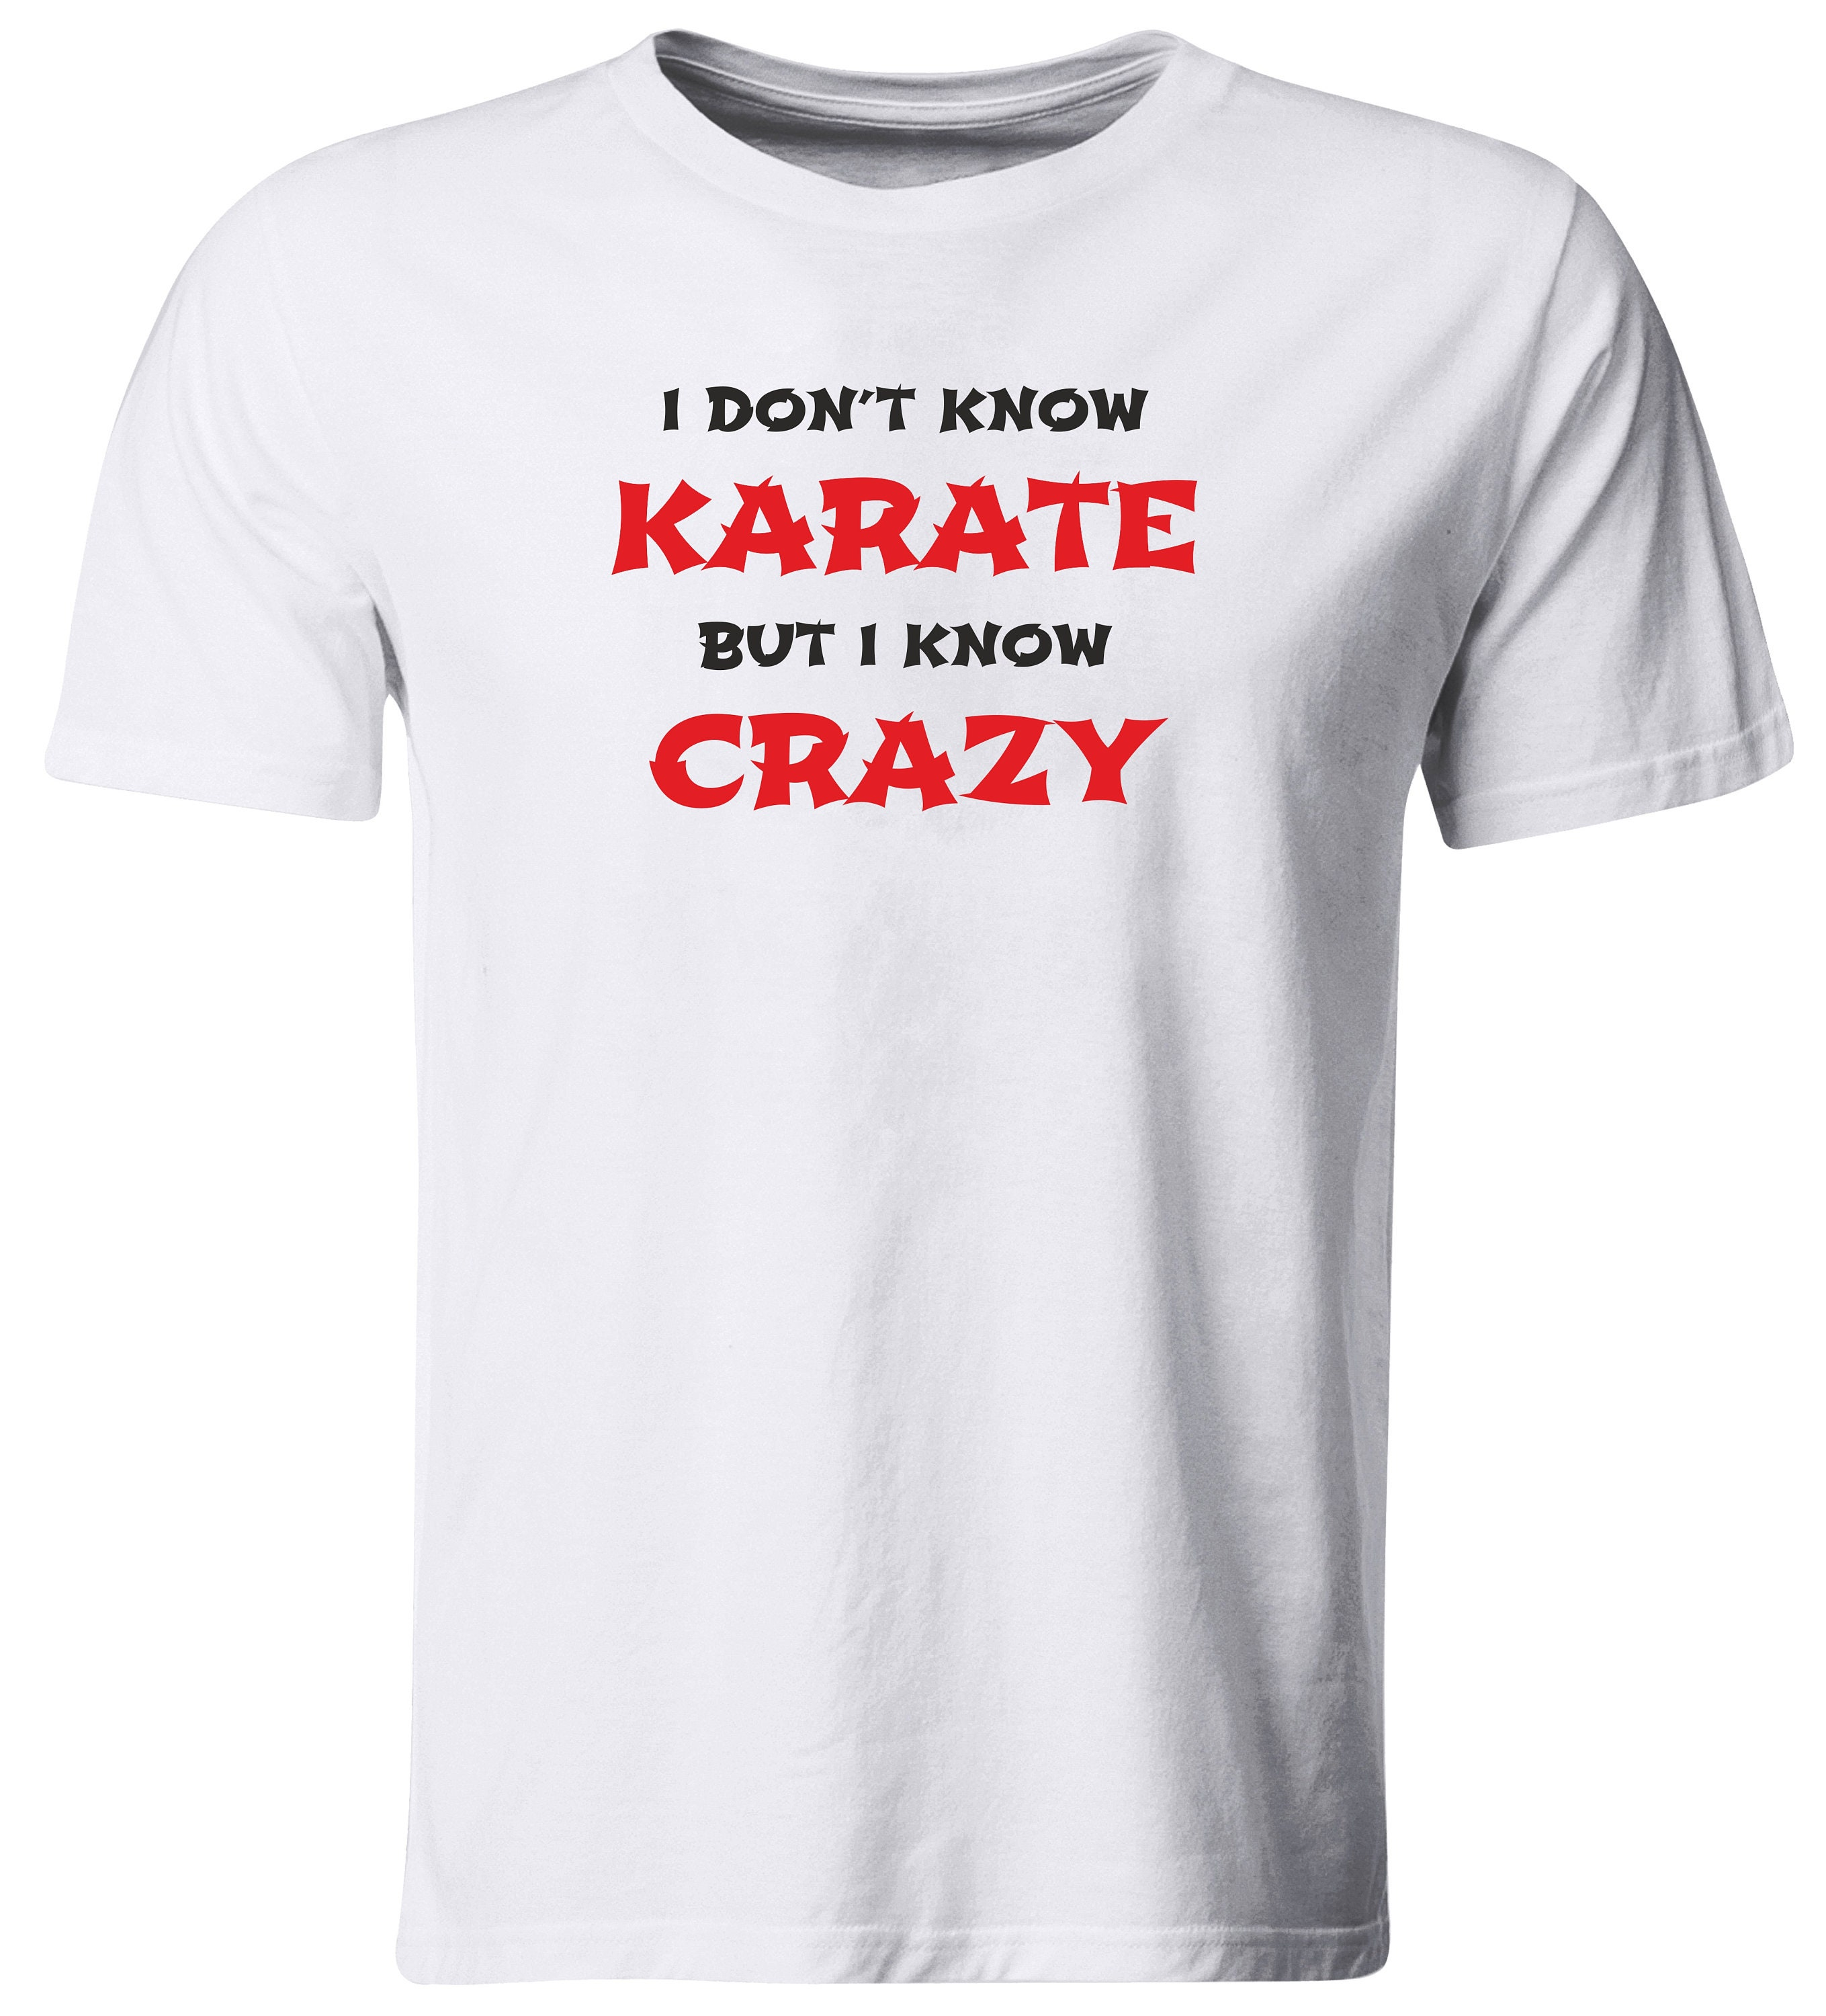 I Dont Know Karate But I Know Crazy T-shirt Martial Arts Funny Insane Mad Hoodie Tshirt